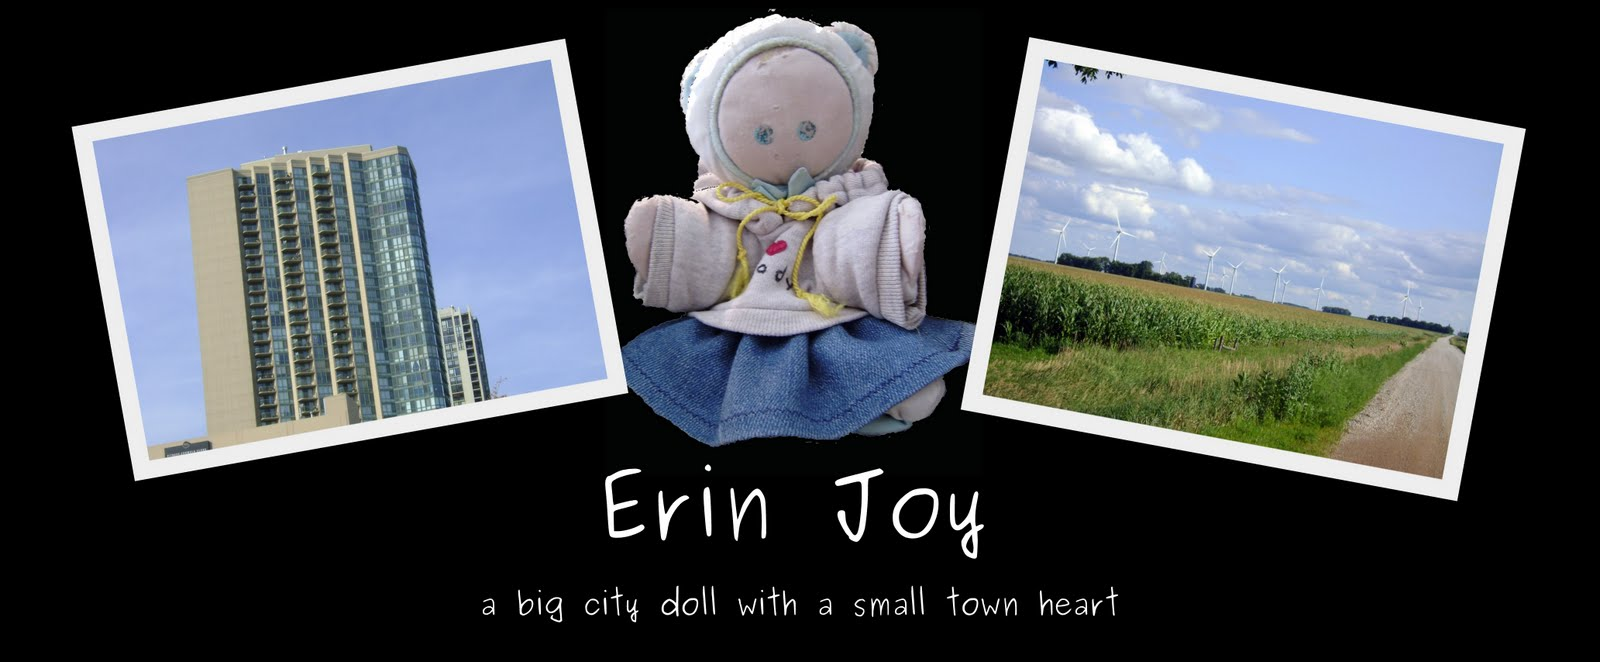 Erin Joy -- Old Site